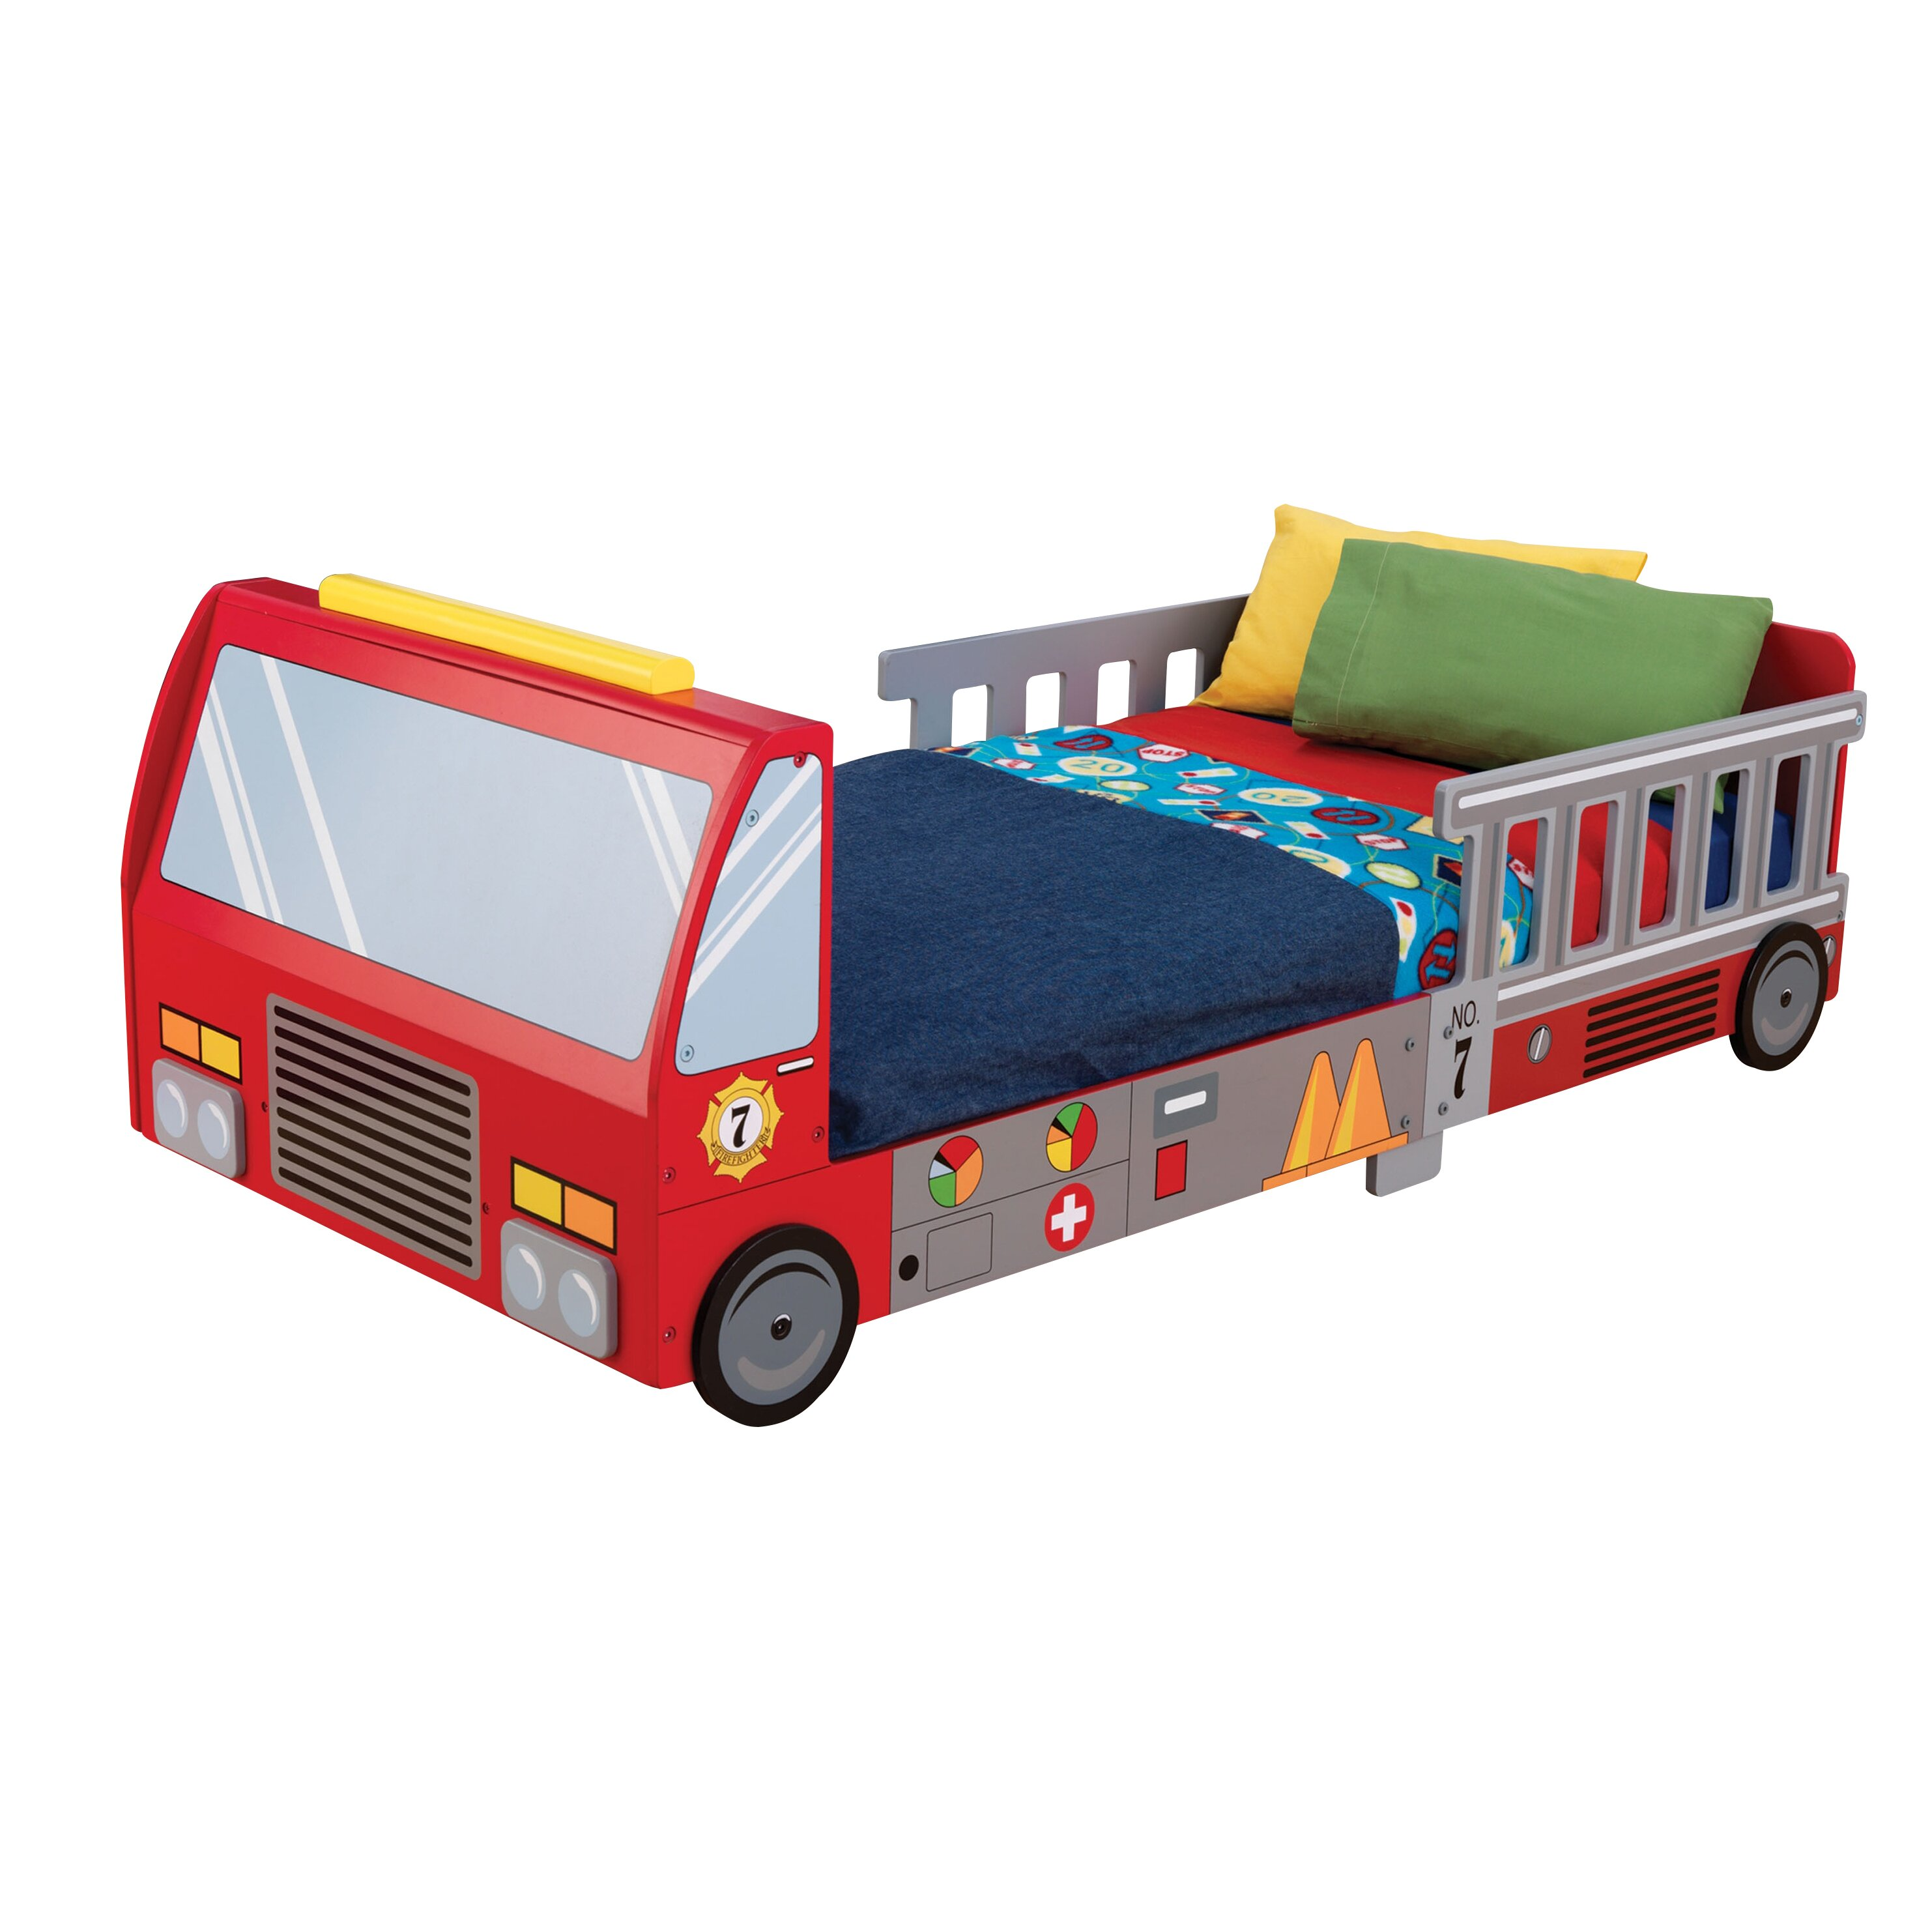 Baby jeep bed - Kidkraft Firefighter Toddler Car Bed